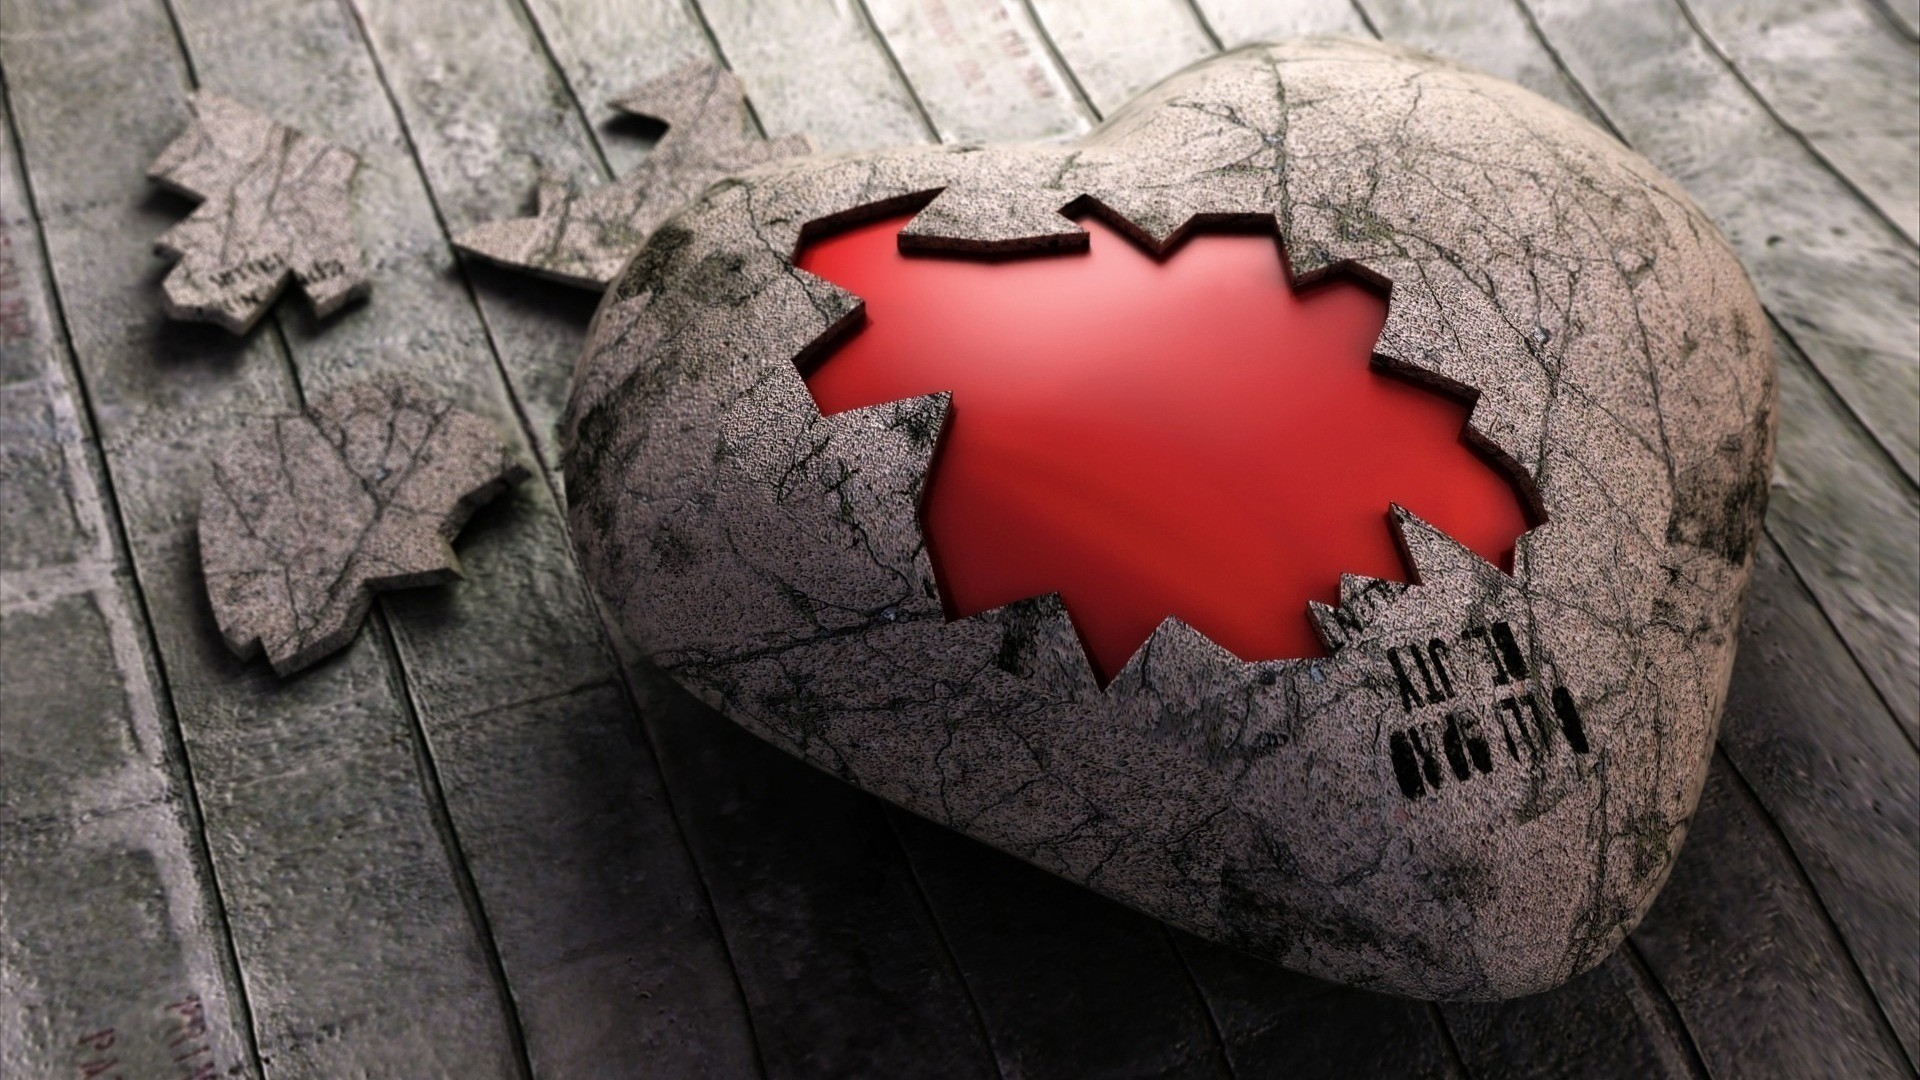 A hard heart is an obstinate and calloused heart that fails to respond to  God or